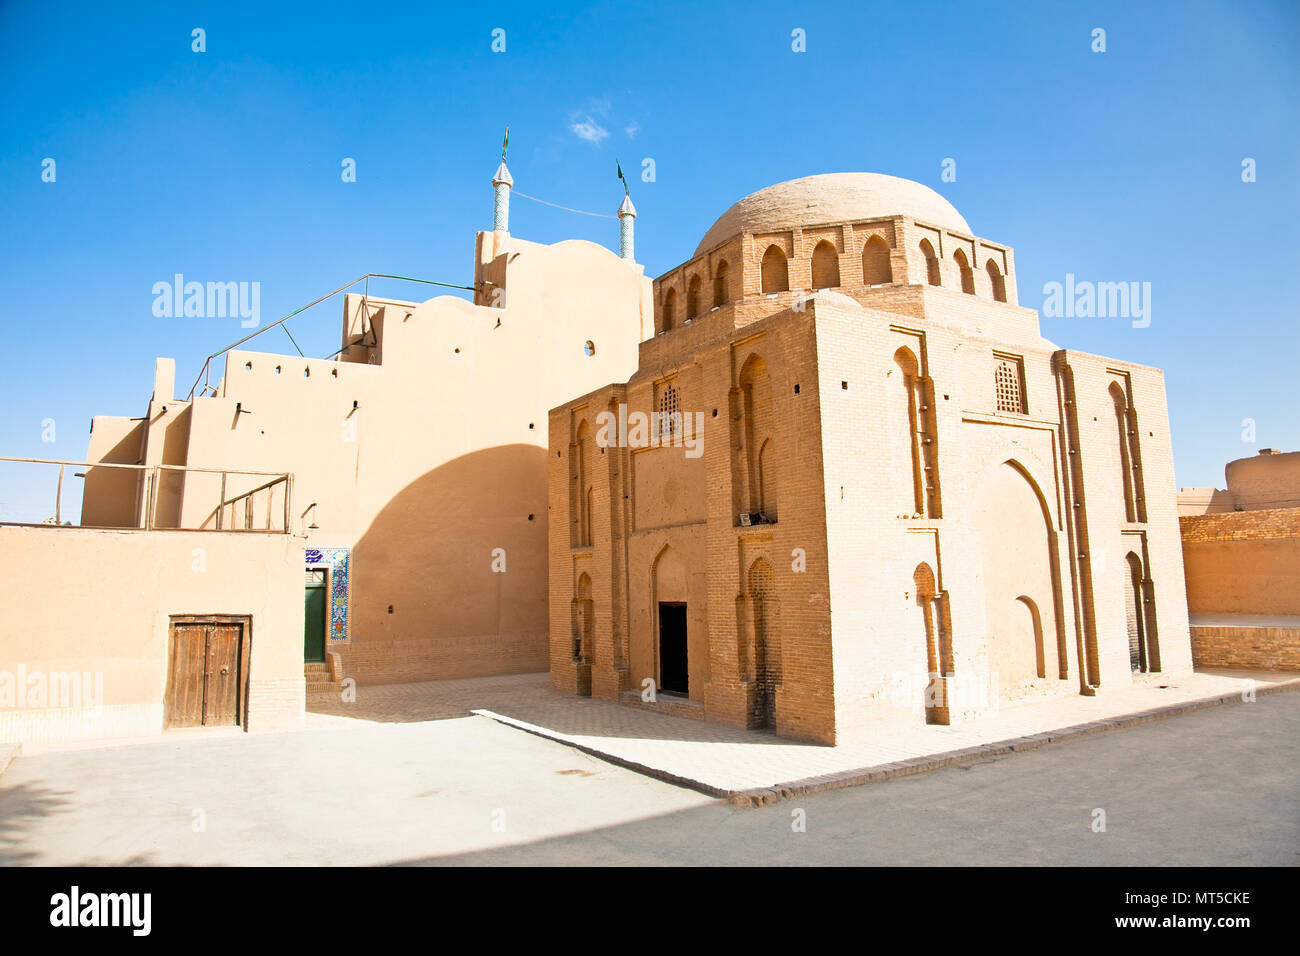 Tomb of 12 Shiite Imams  in Yazd, Iran - Stock Image